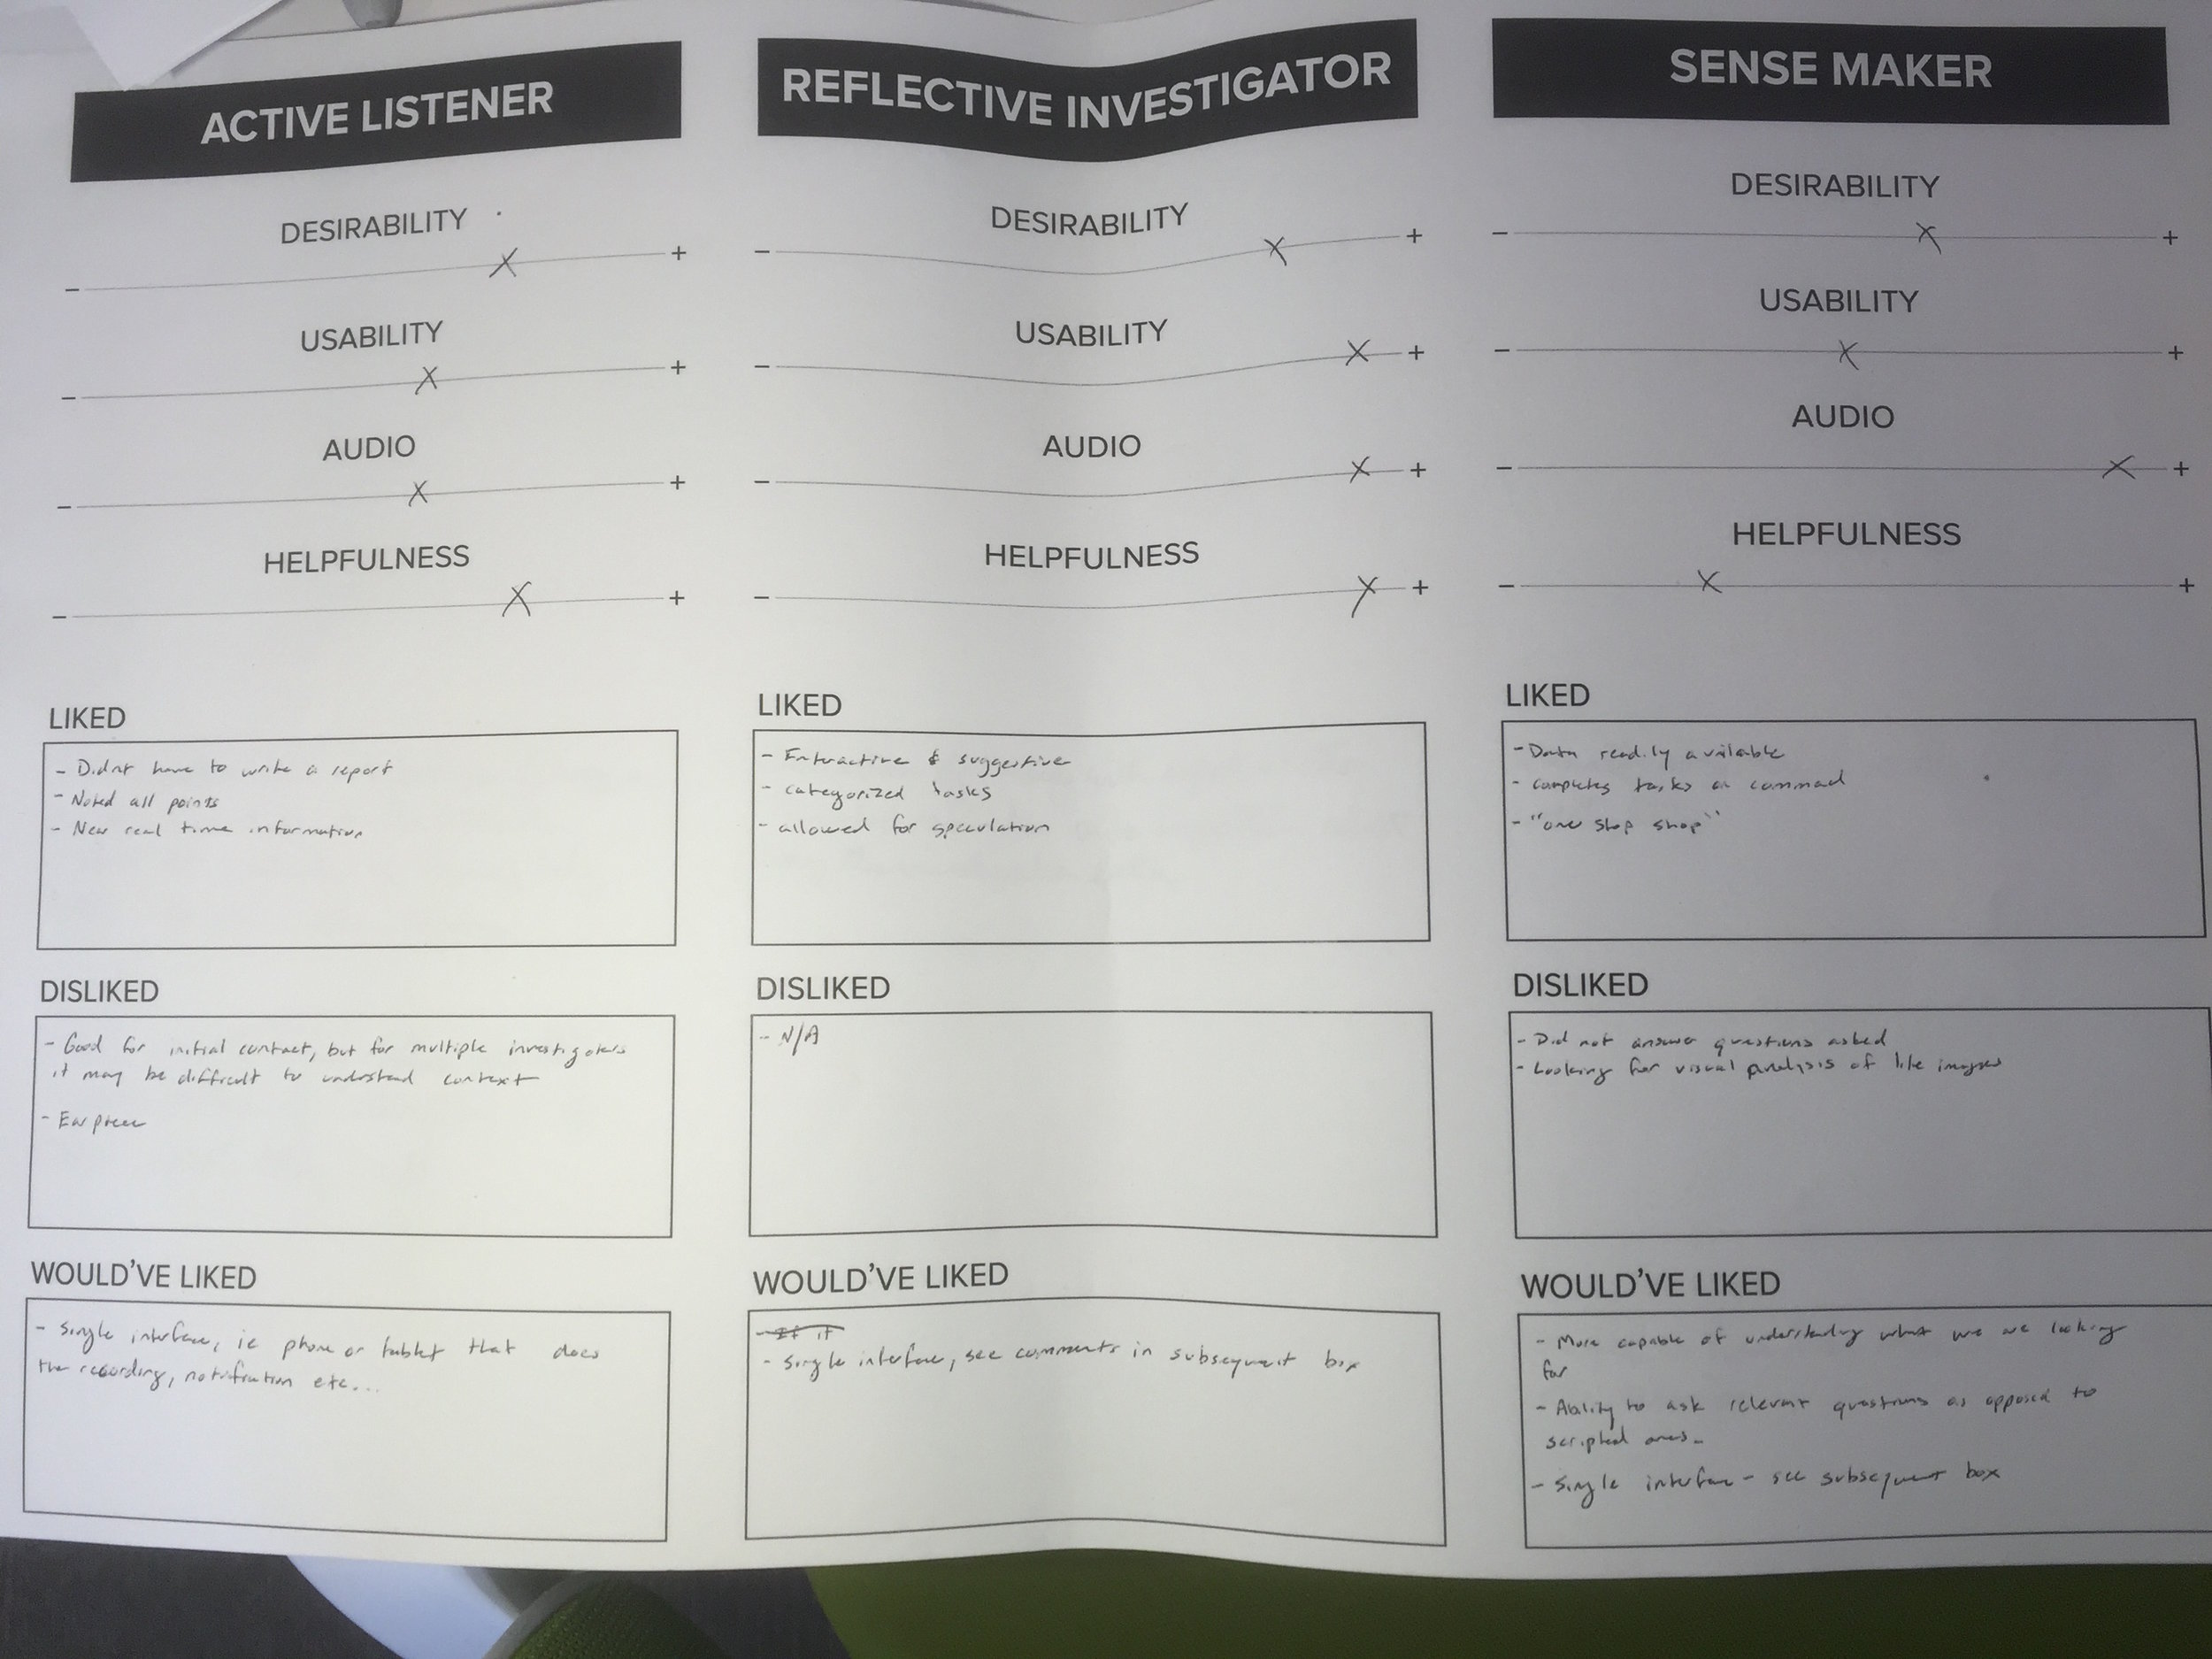 Following the concept testing, each investigator filled out a form explaining what they liked and disliked about the prototypes.